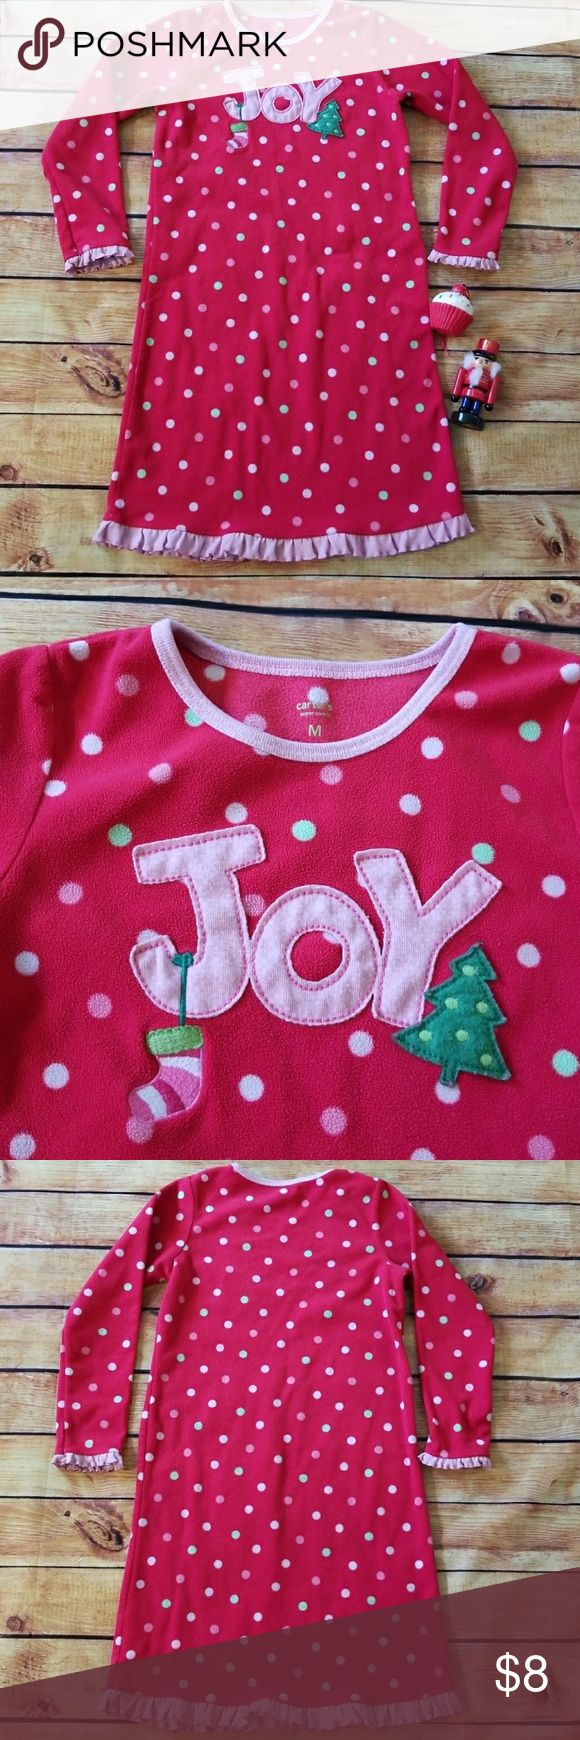 🎄⛄Girls Festive Carter Fleece Nightgown, Size M 🎄⛄❄Cute nightgown. Carter's size M, 6/6X. Red with polka dots and JOY printed on the front. Pre-loved by my daughter's 💕 Carter's Pajamas Nightgowns